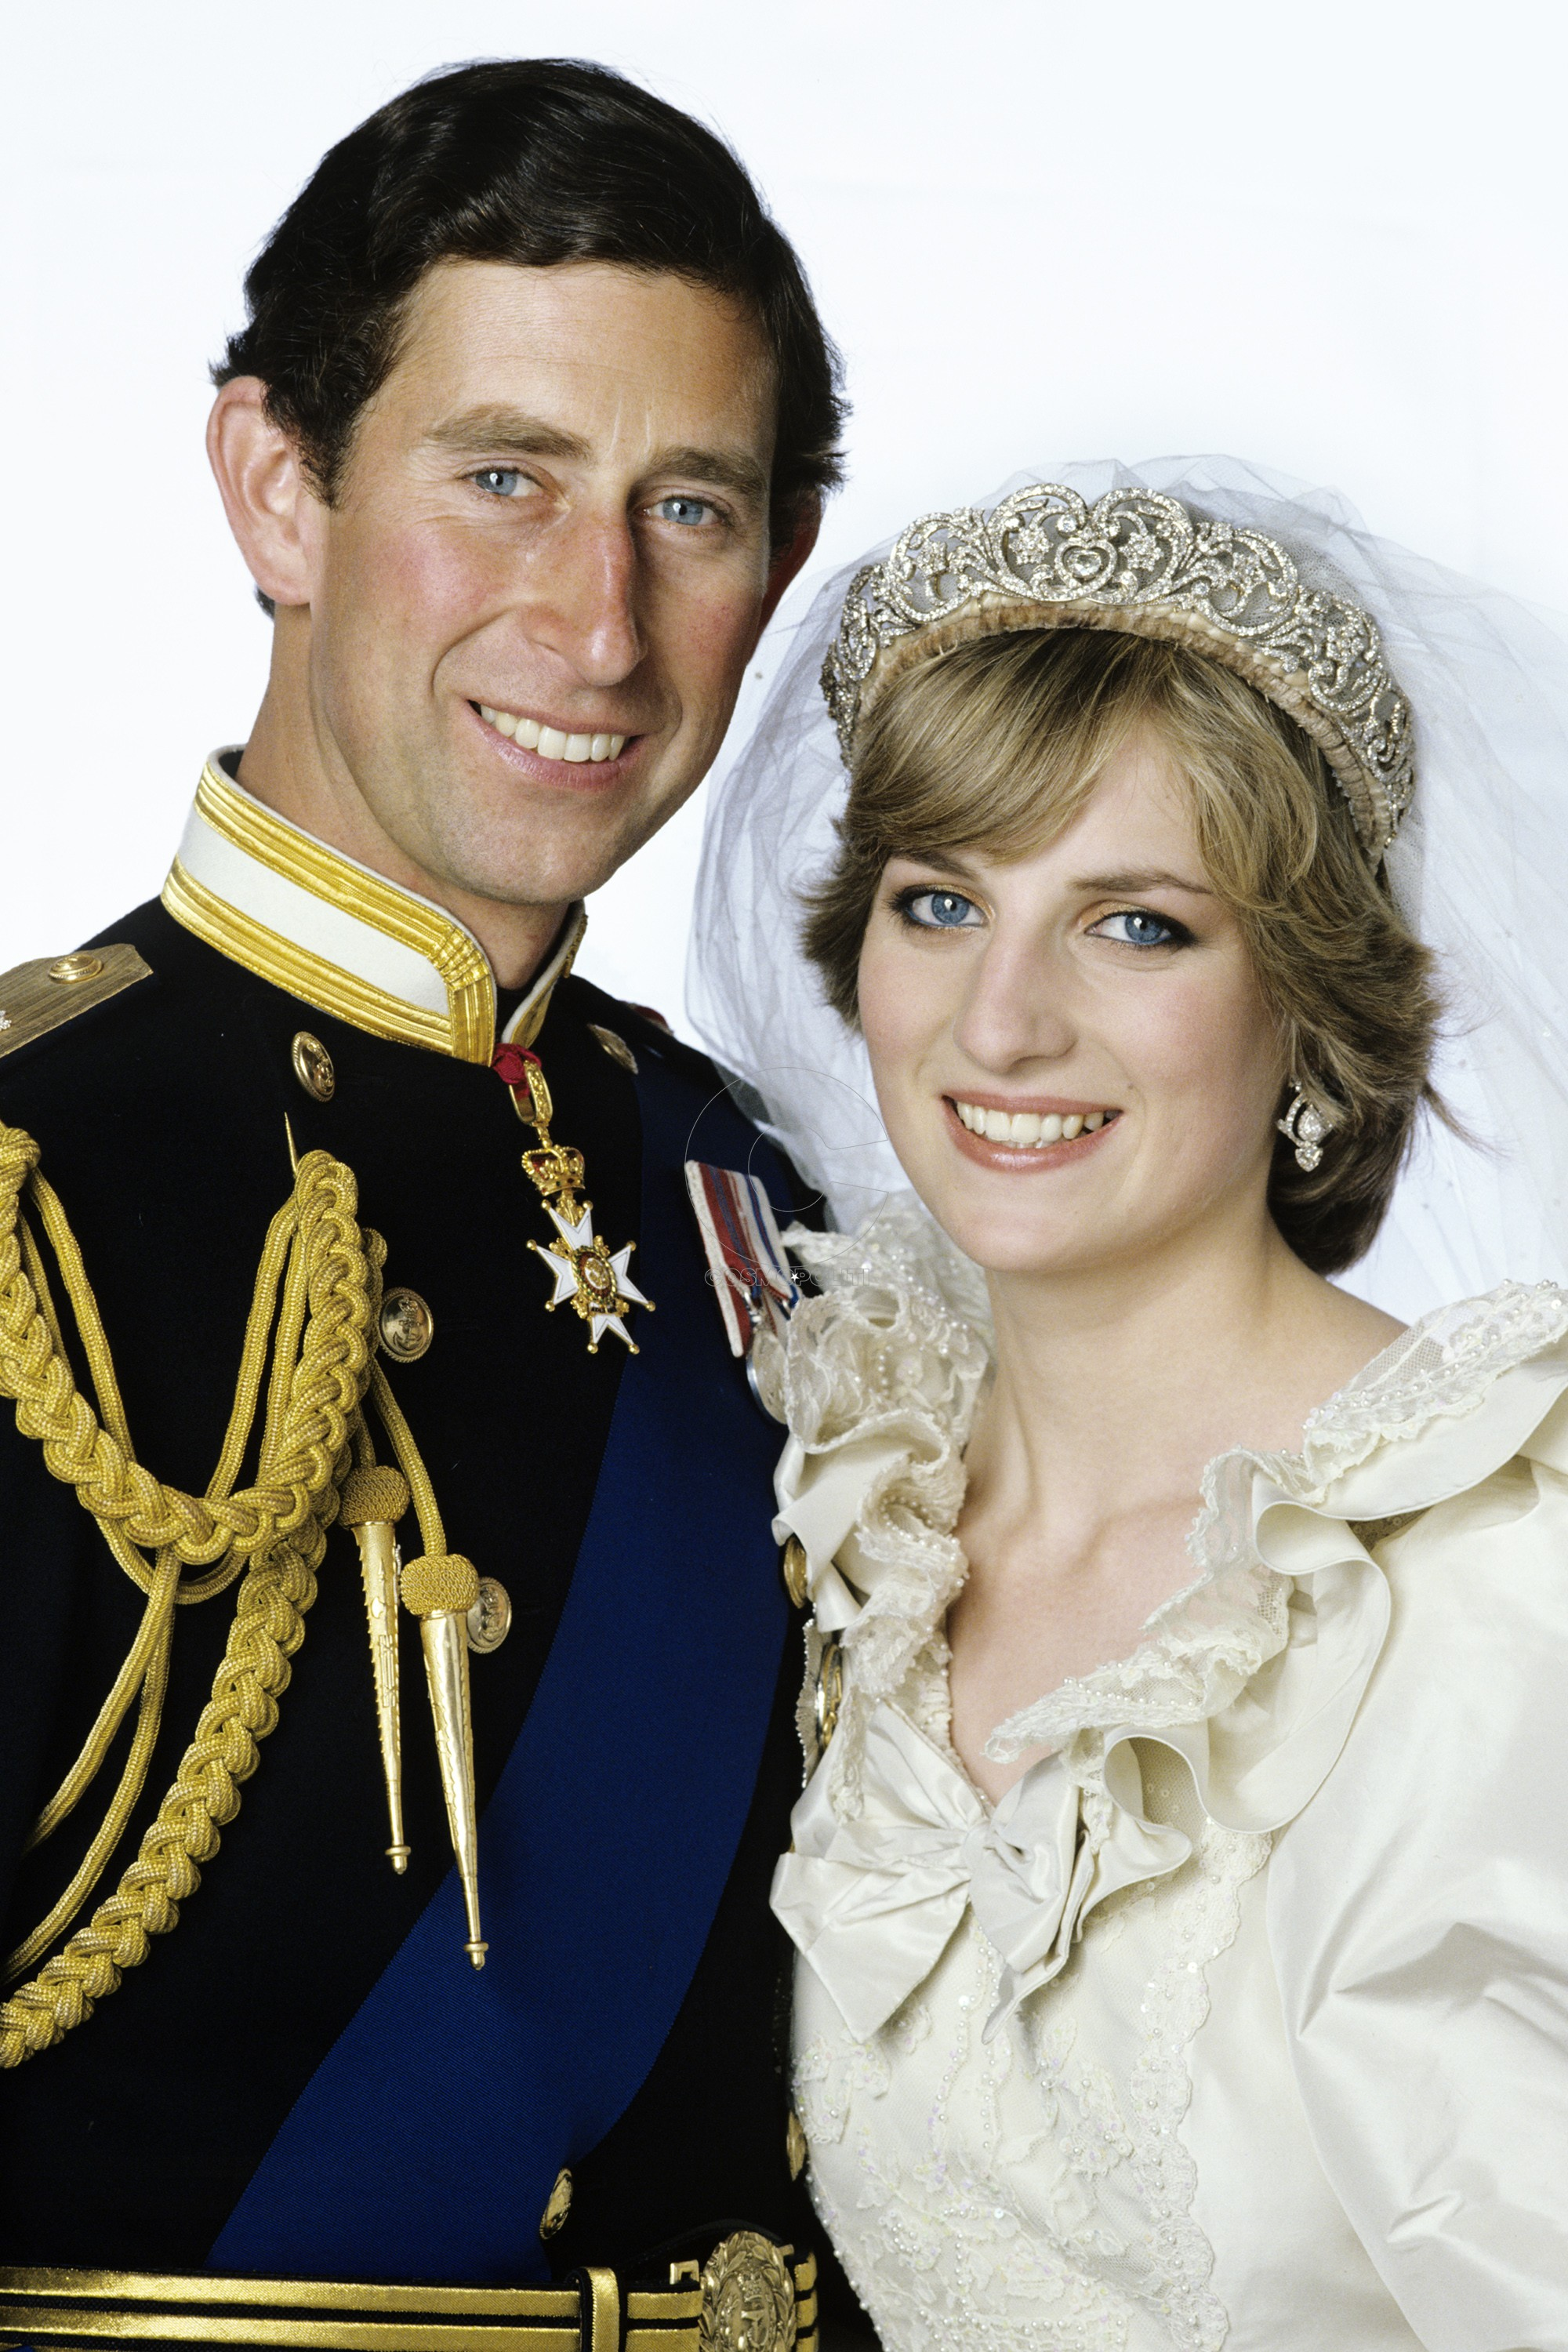 1438193156-hbz-princess-diana-prince-charles-wedding-77413370